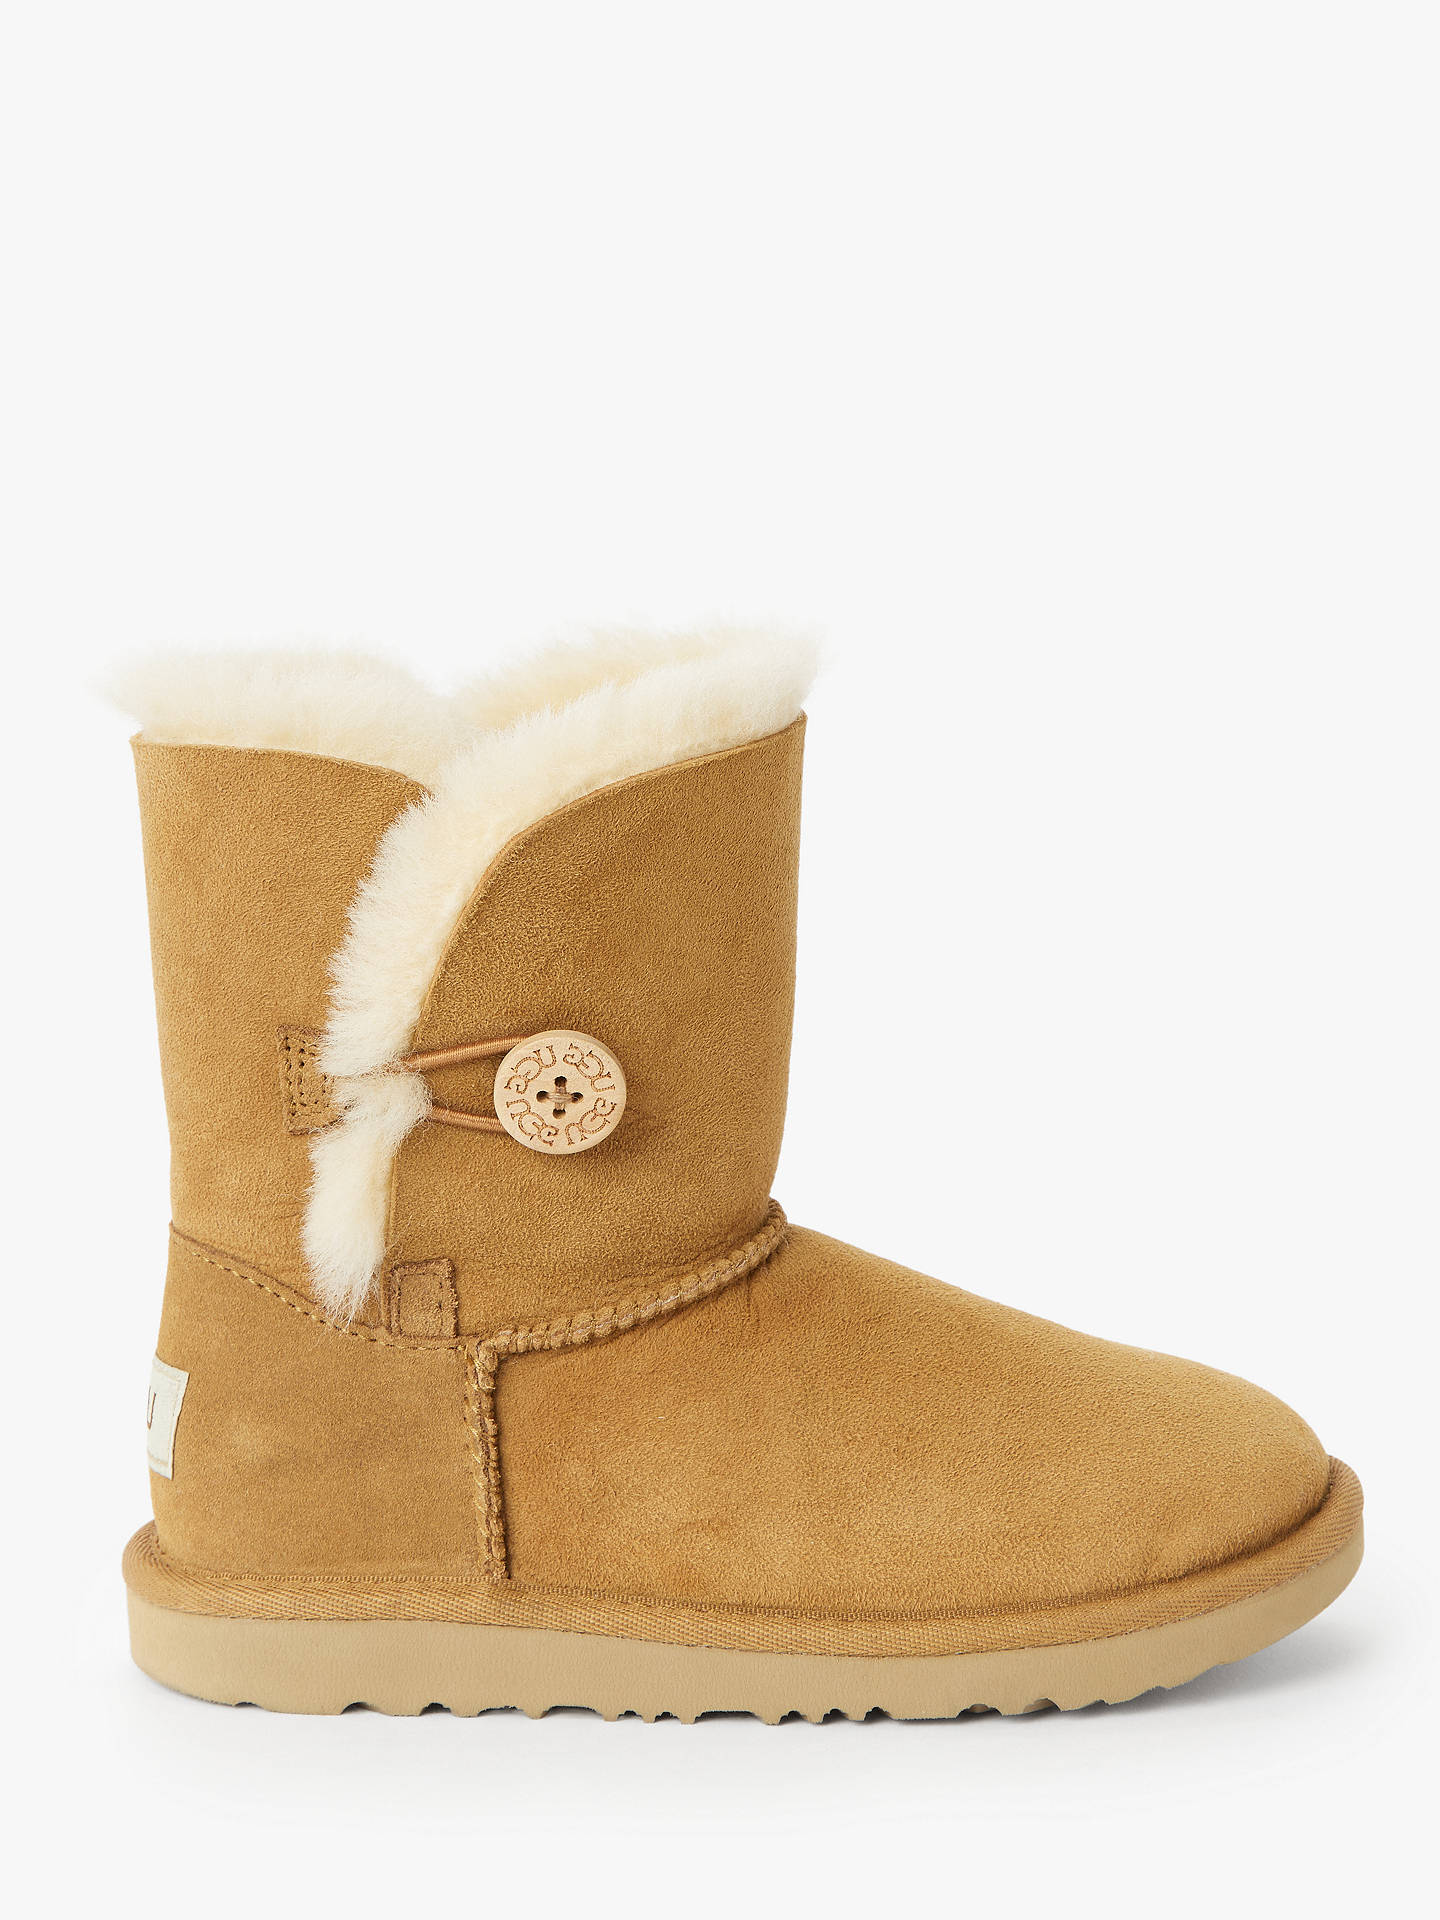 a6aa33b9b Buy UGG Children's Bailey Button II Boots, Chestnut, 12 Jnr Online at  johnlewis.